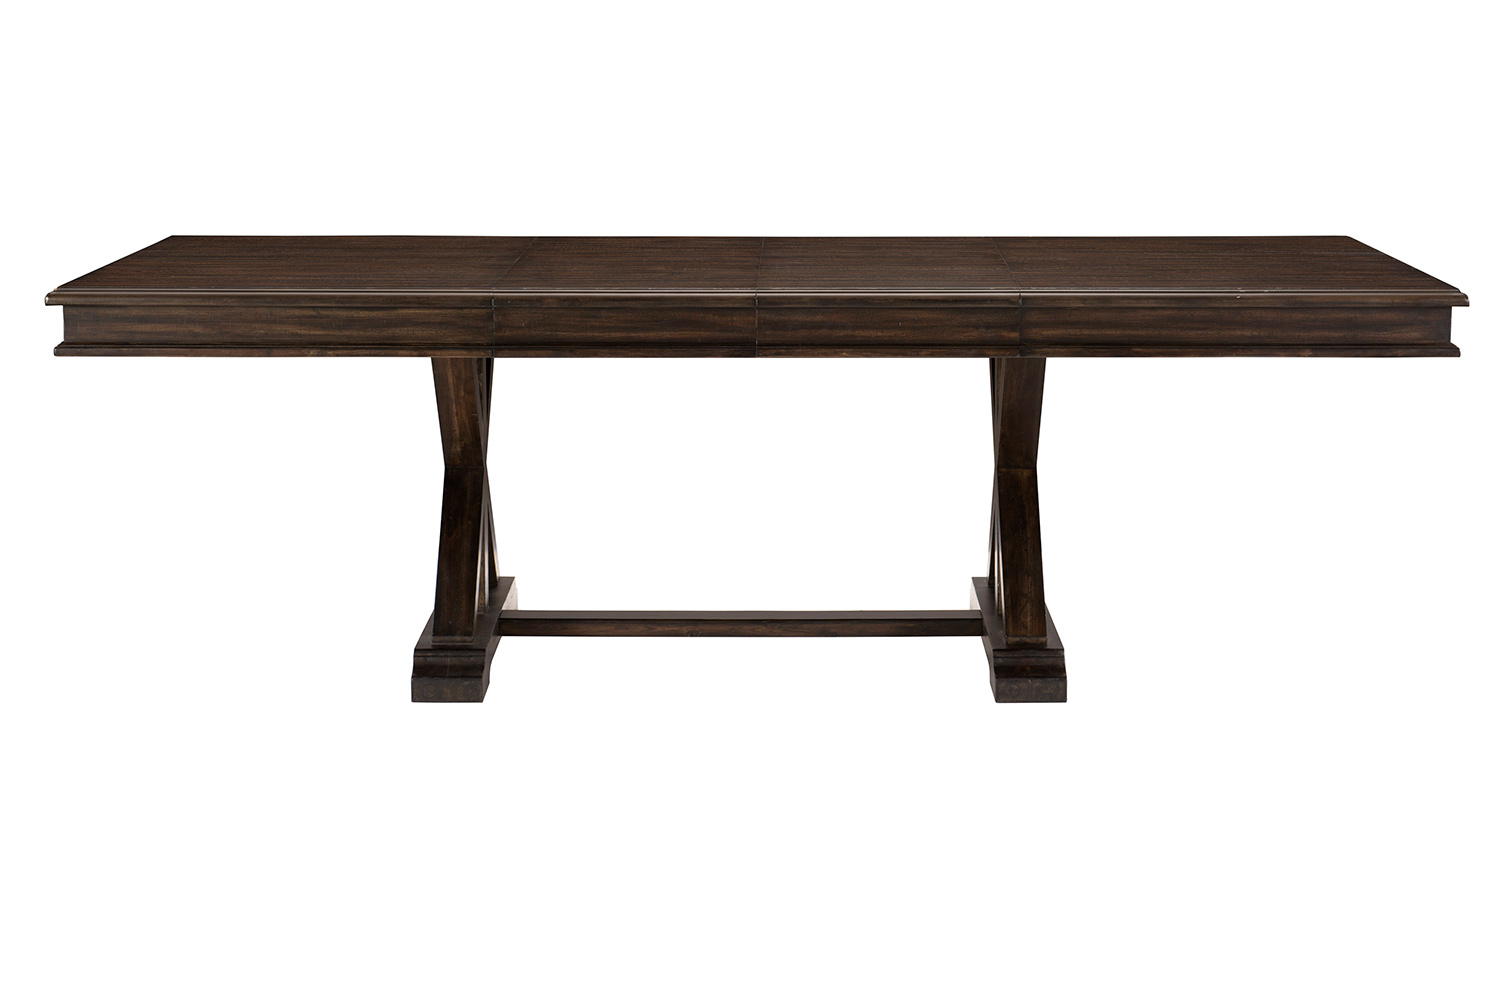 Homelegance Cardano Dining Table - Driftwood Charcoal